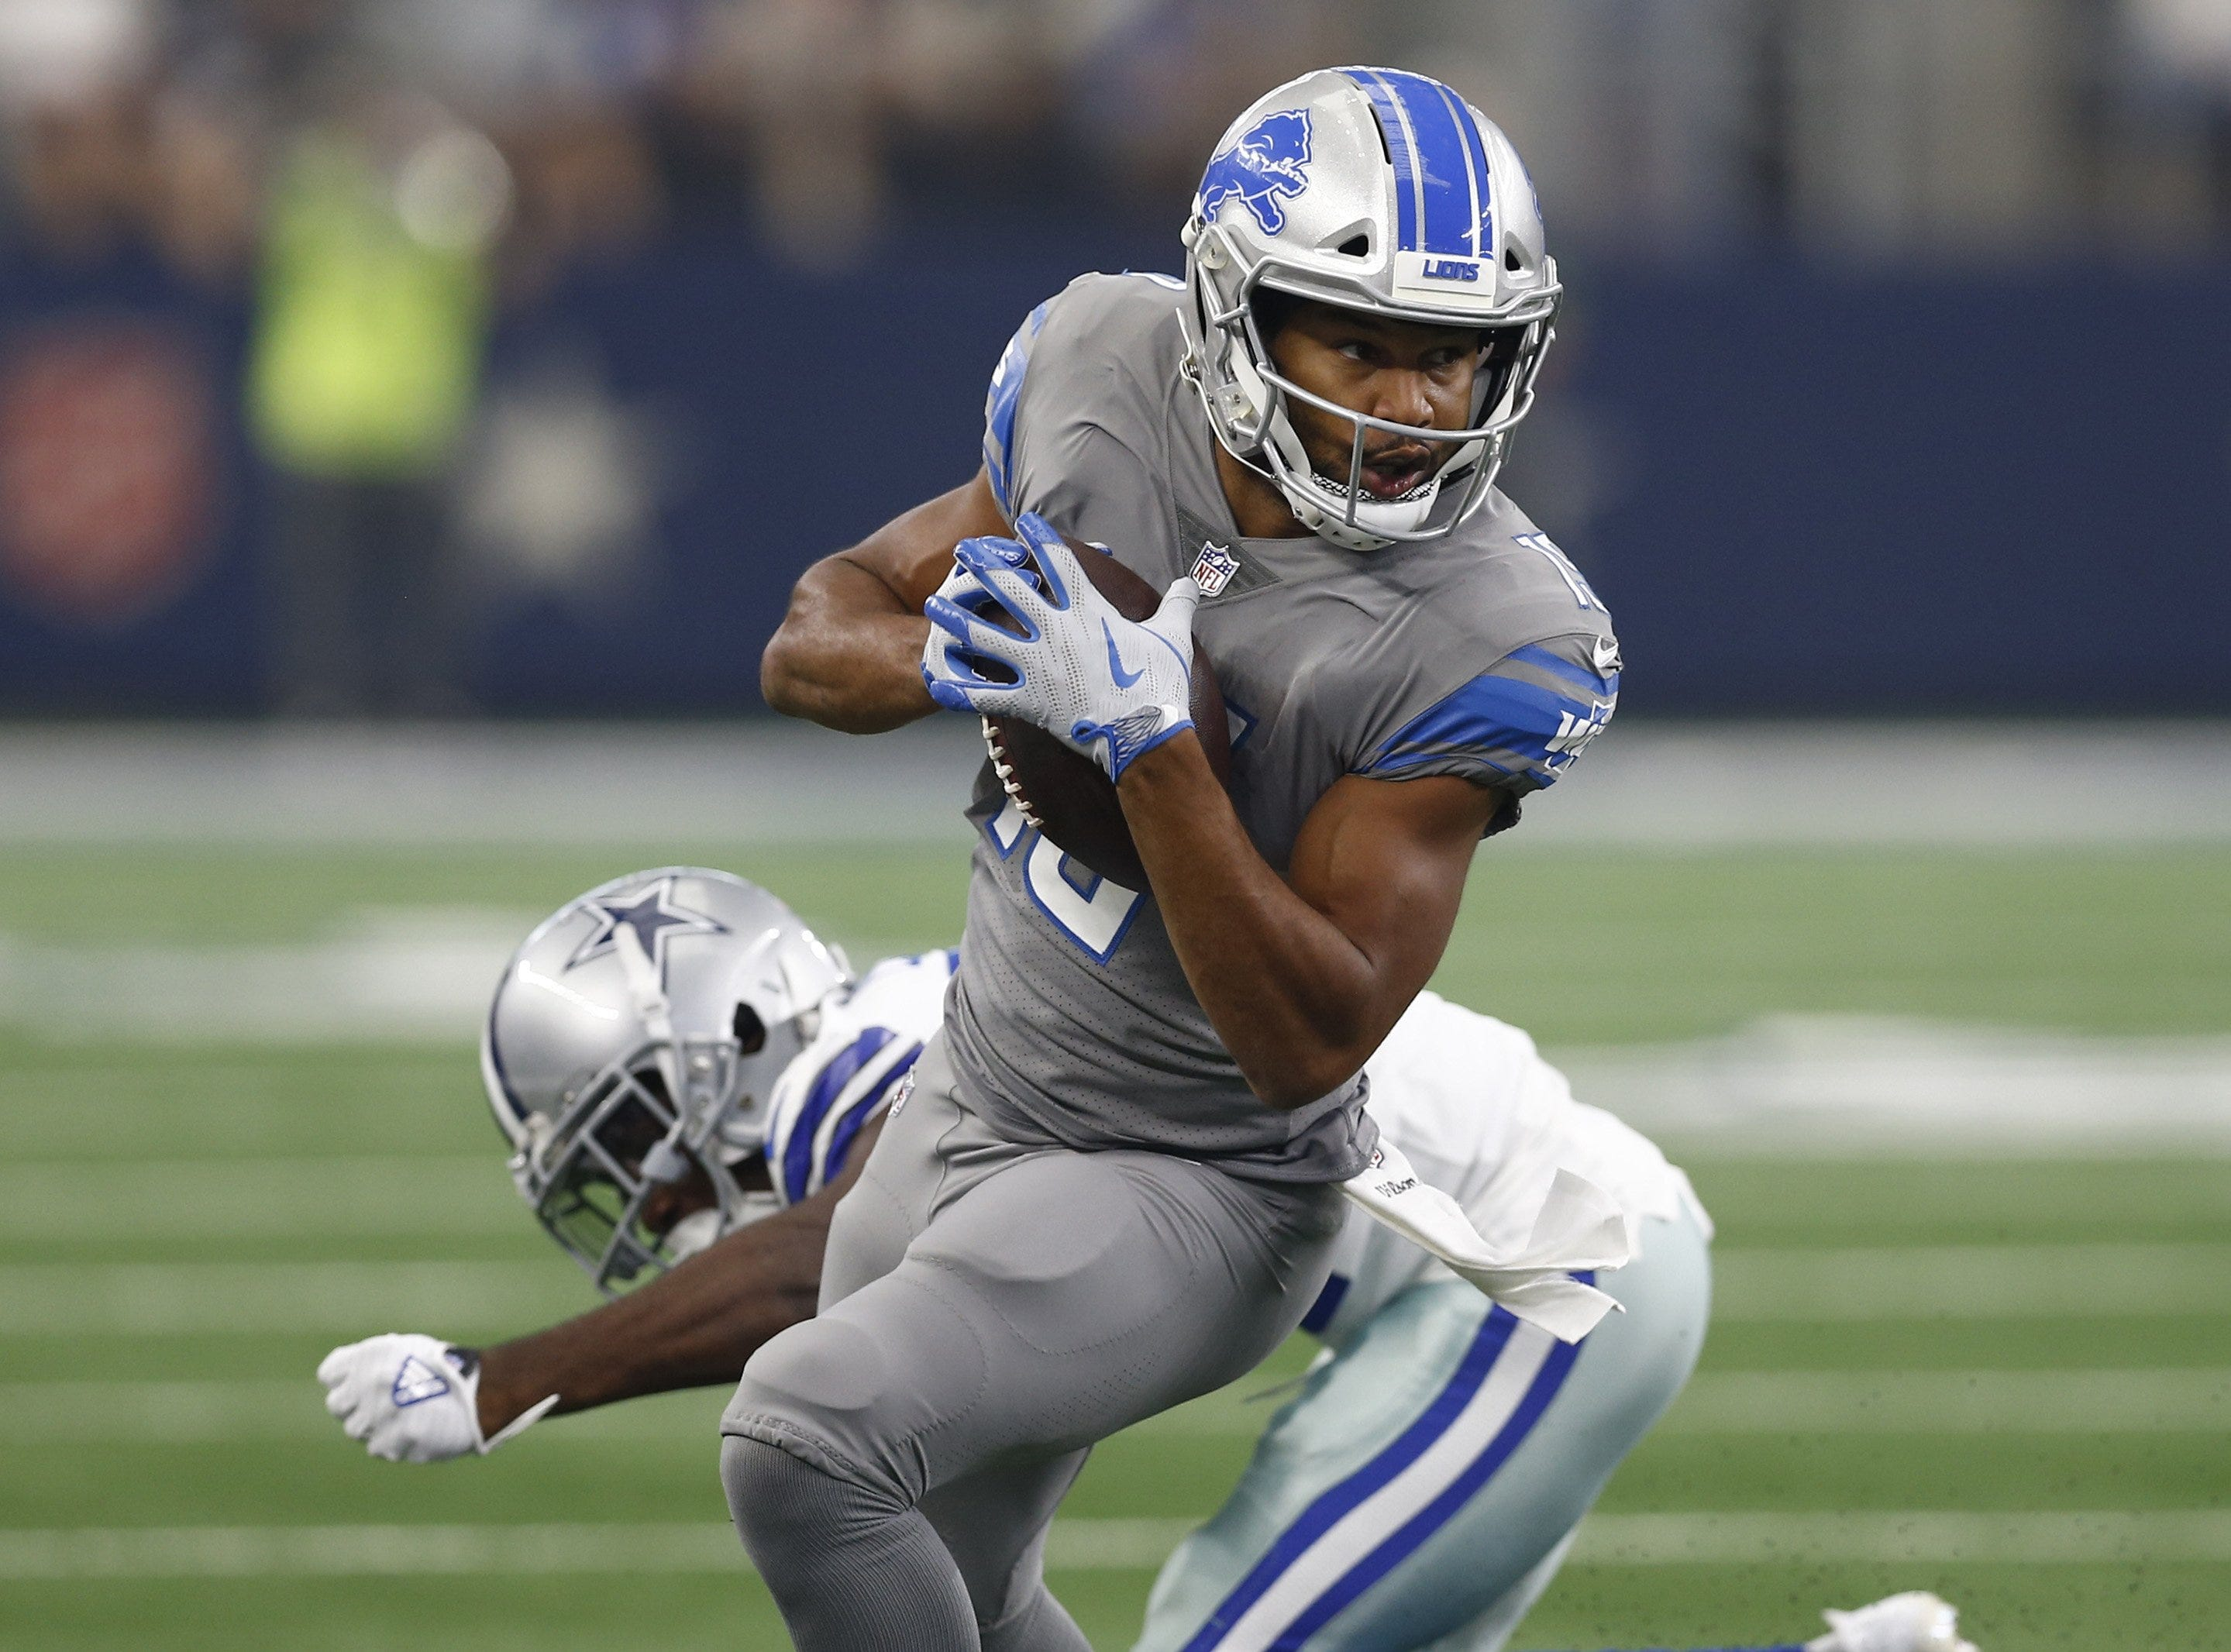 Lions wide receiver Golden Tate breaks a tackle on his touchdown catch during the first half of the Lions' 26-24 loss on Sunday, Sept. 30, 2018, in Arlington, Texas.